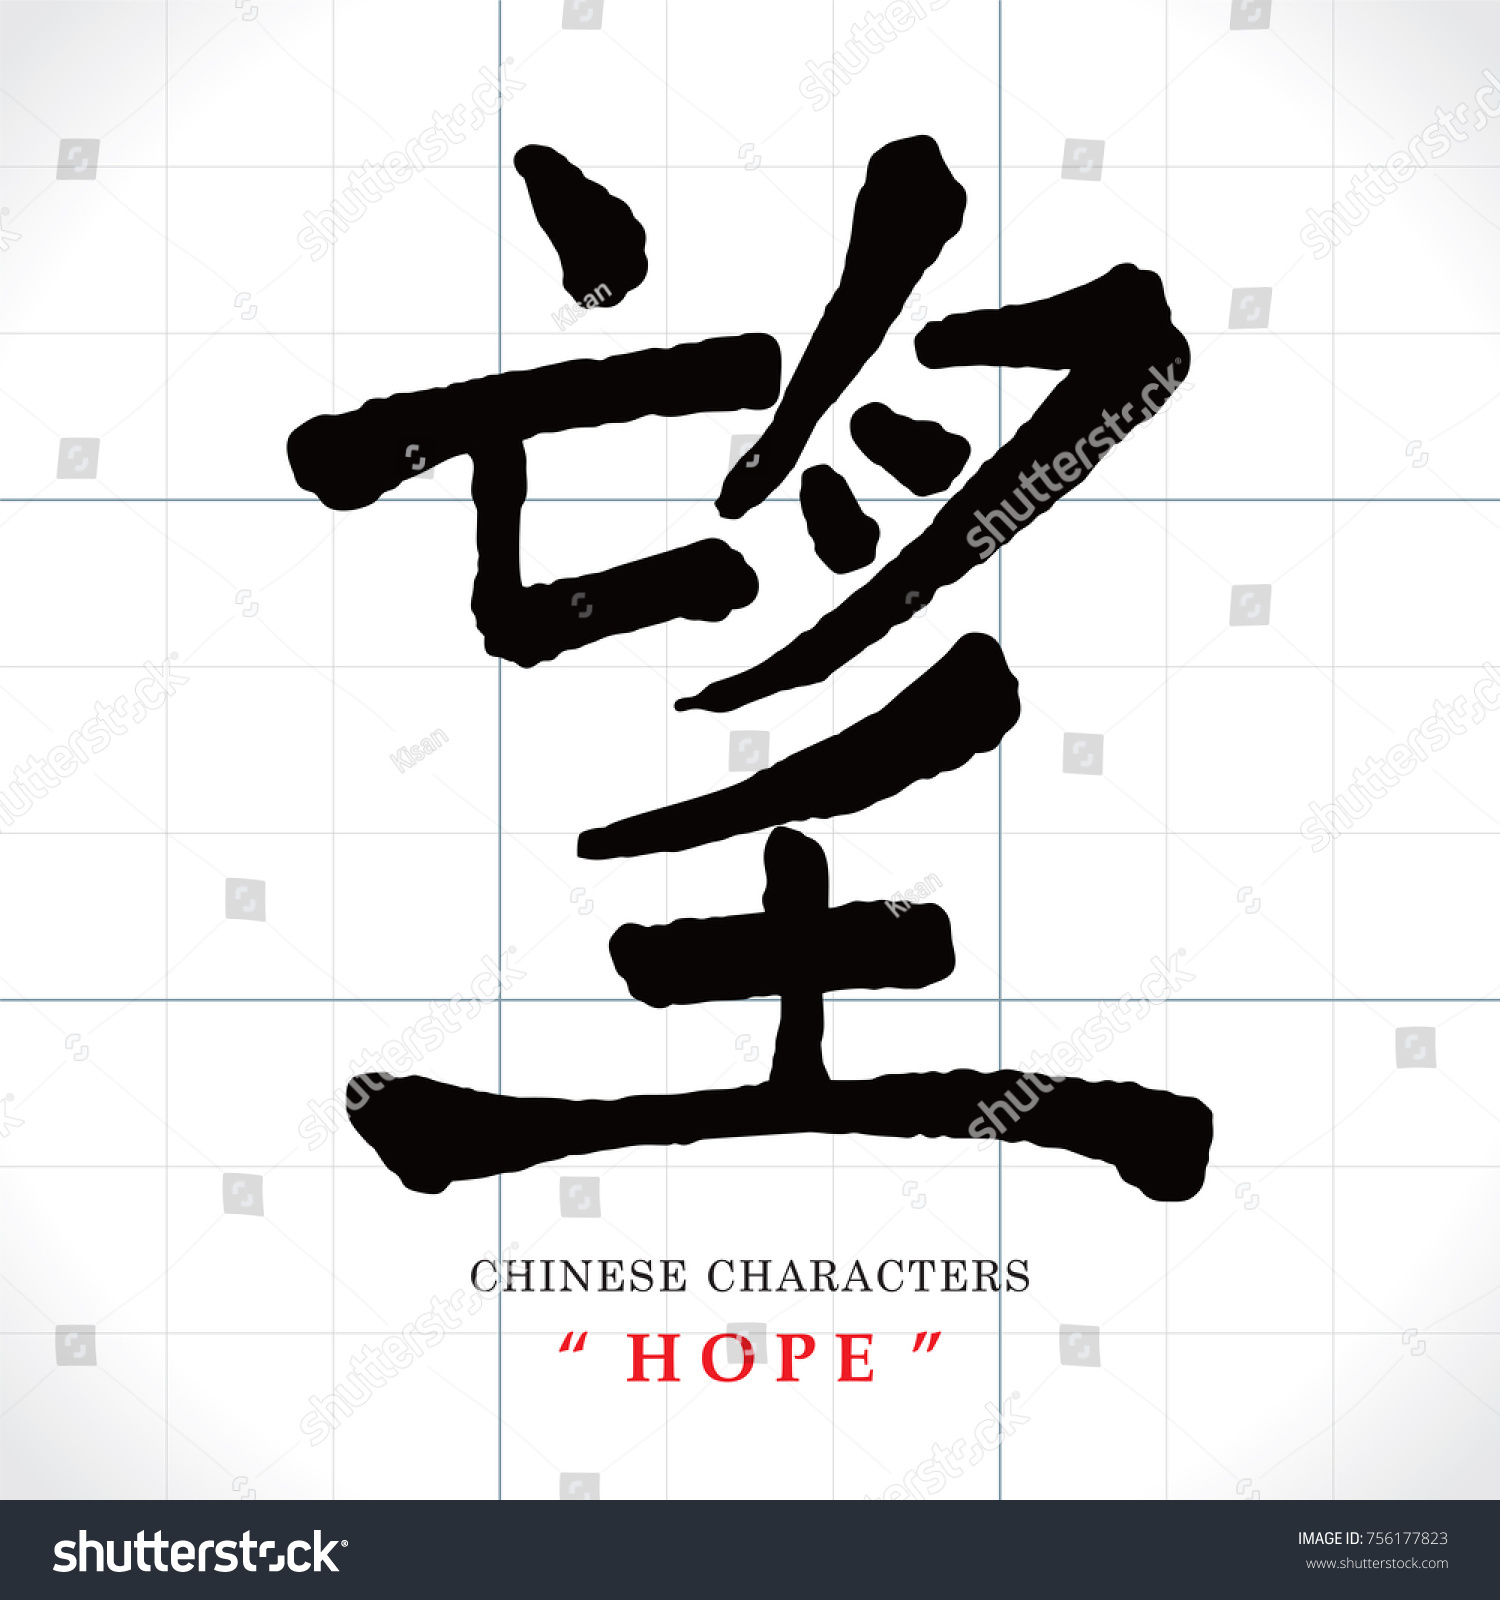 Vector Chinese Characters Hope Stock Vector Royalty Free 756177823